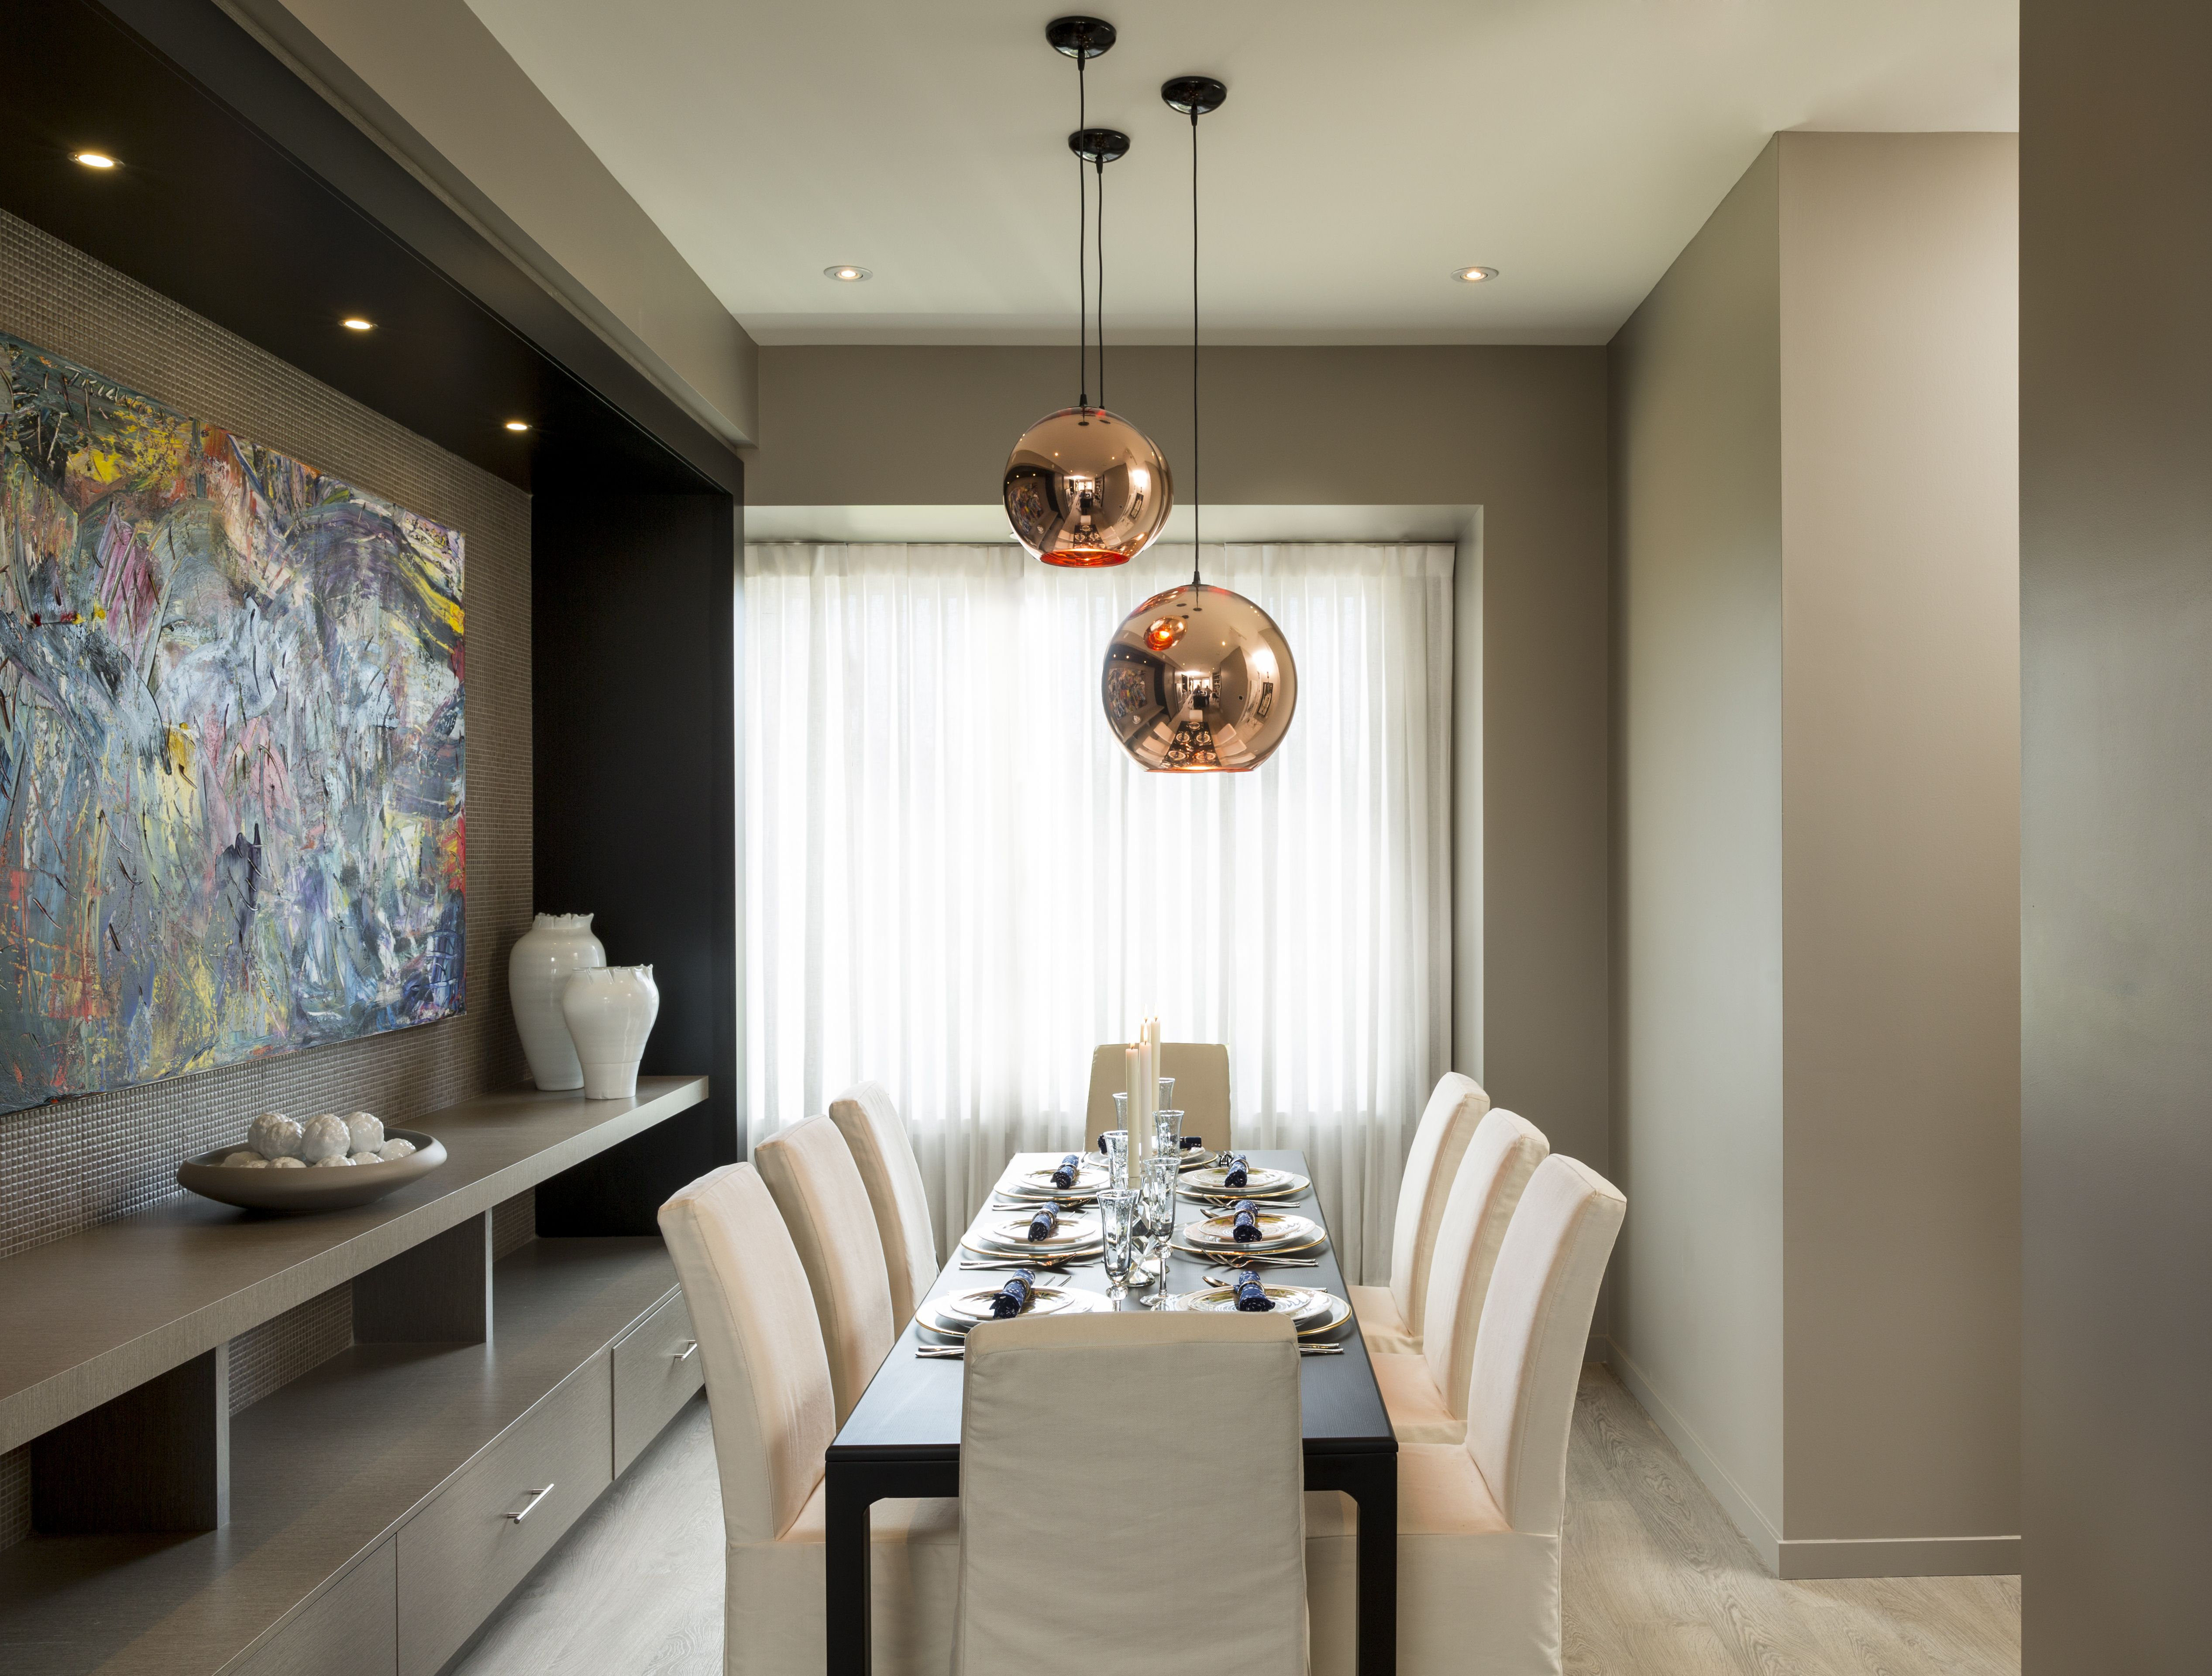 Built In Buffet Table And Modern Light Fixtures To Add A Contemporary Feel To Our Urban Tow Dining Room Contemporary Dining Room Buffet Dining Room Table Decor